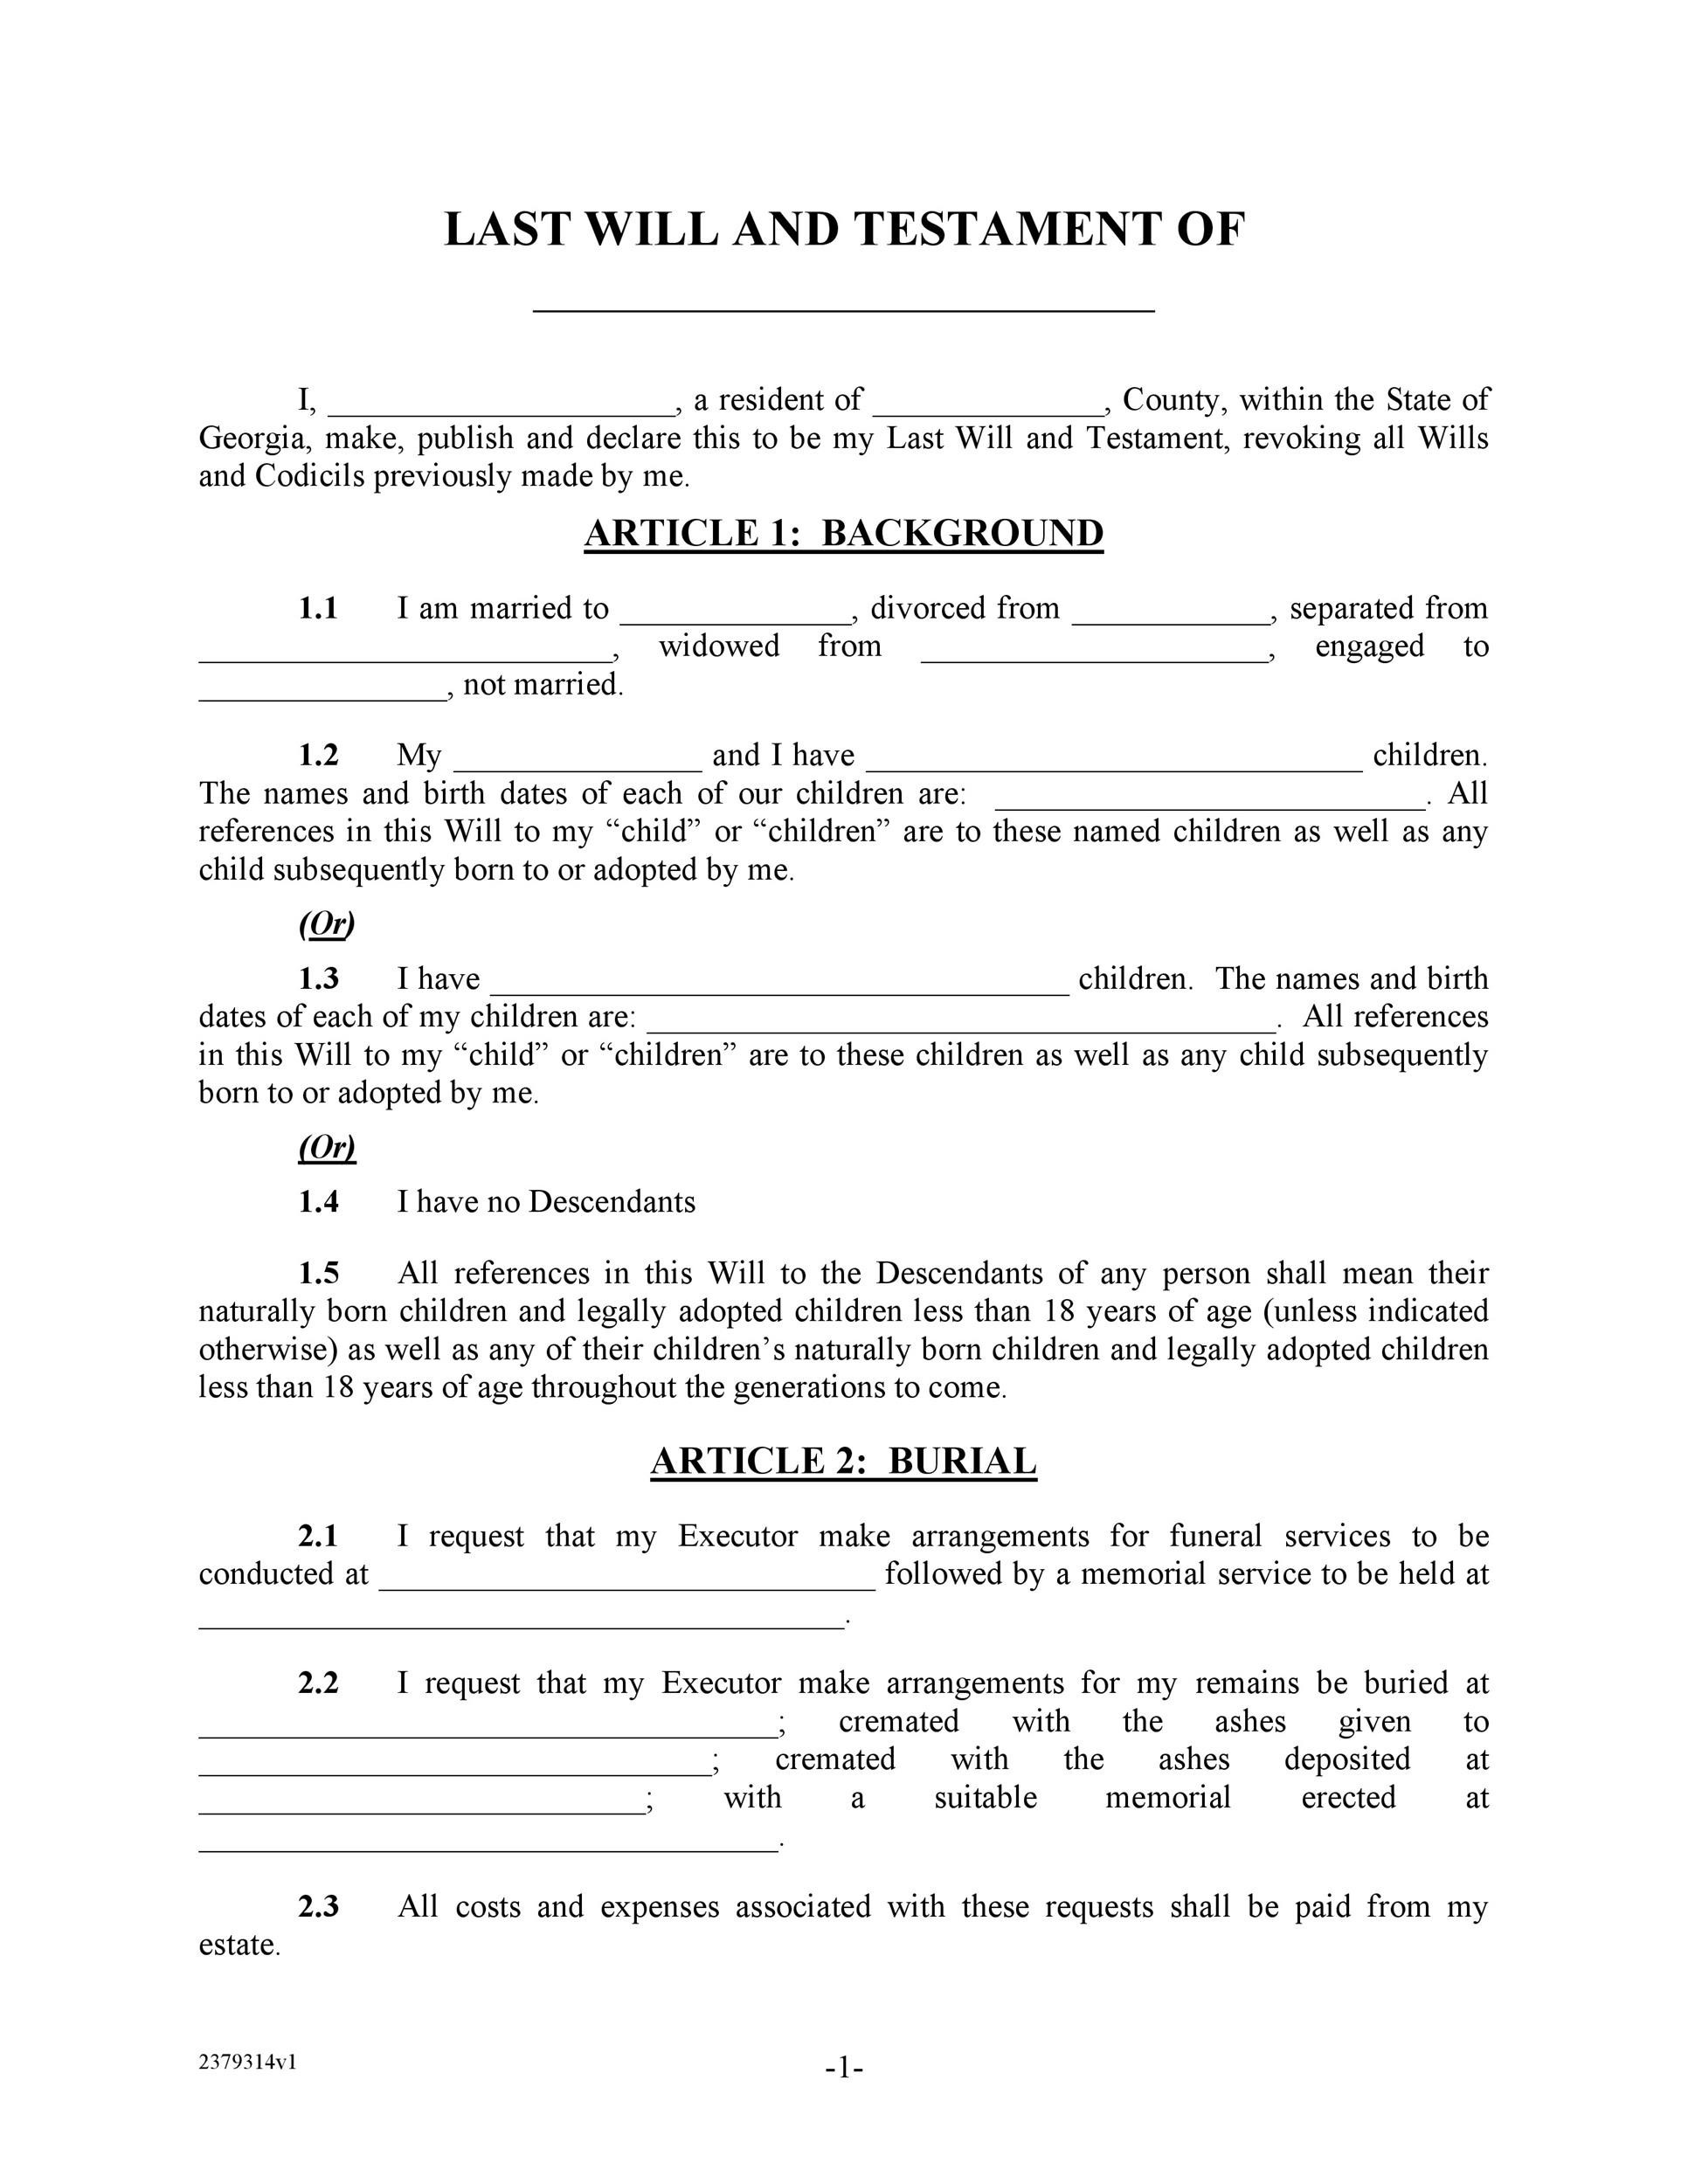 Free Last will and testament template 15